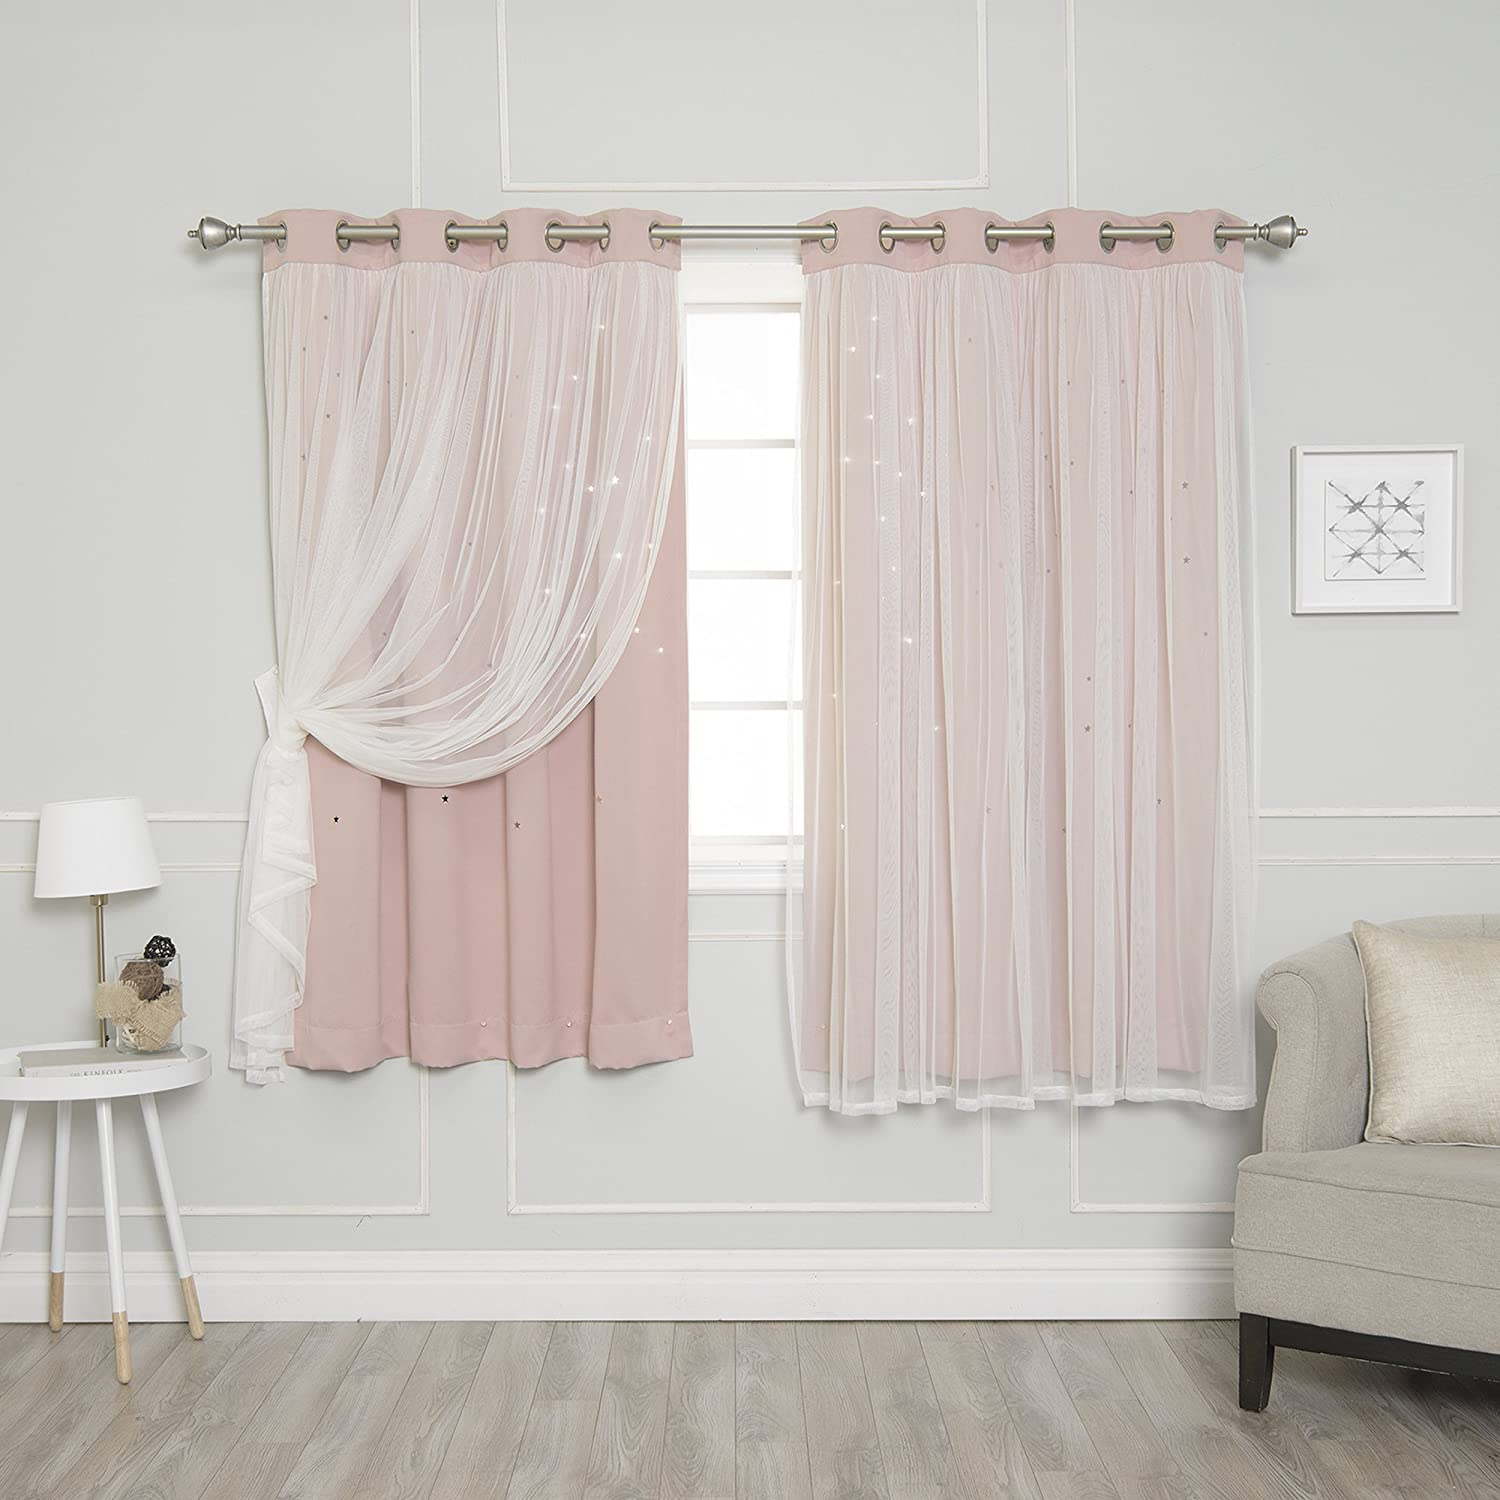 """Best Home Fashion Tulle Overlay Star Cut Out Blackout Curtains - Stainless Steel Grommet Top - Dusty Pink - 52"""" W x 63"""" L (Set of 2 Panels)"""